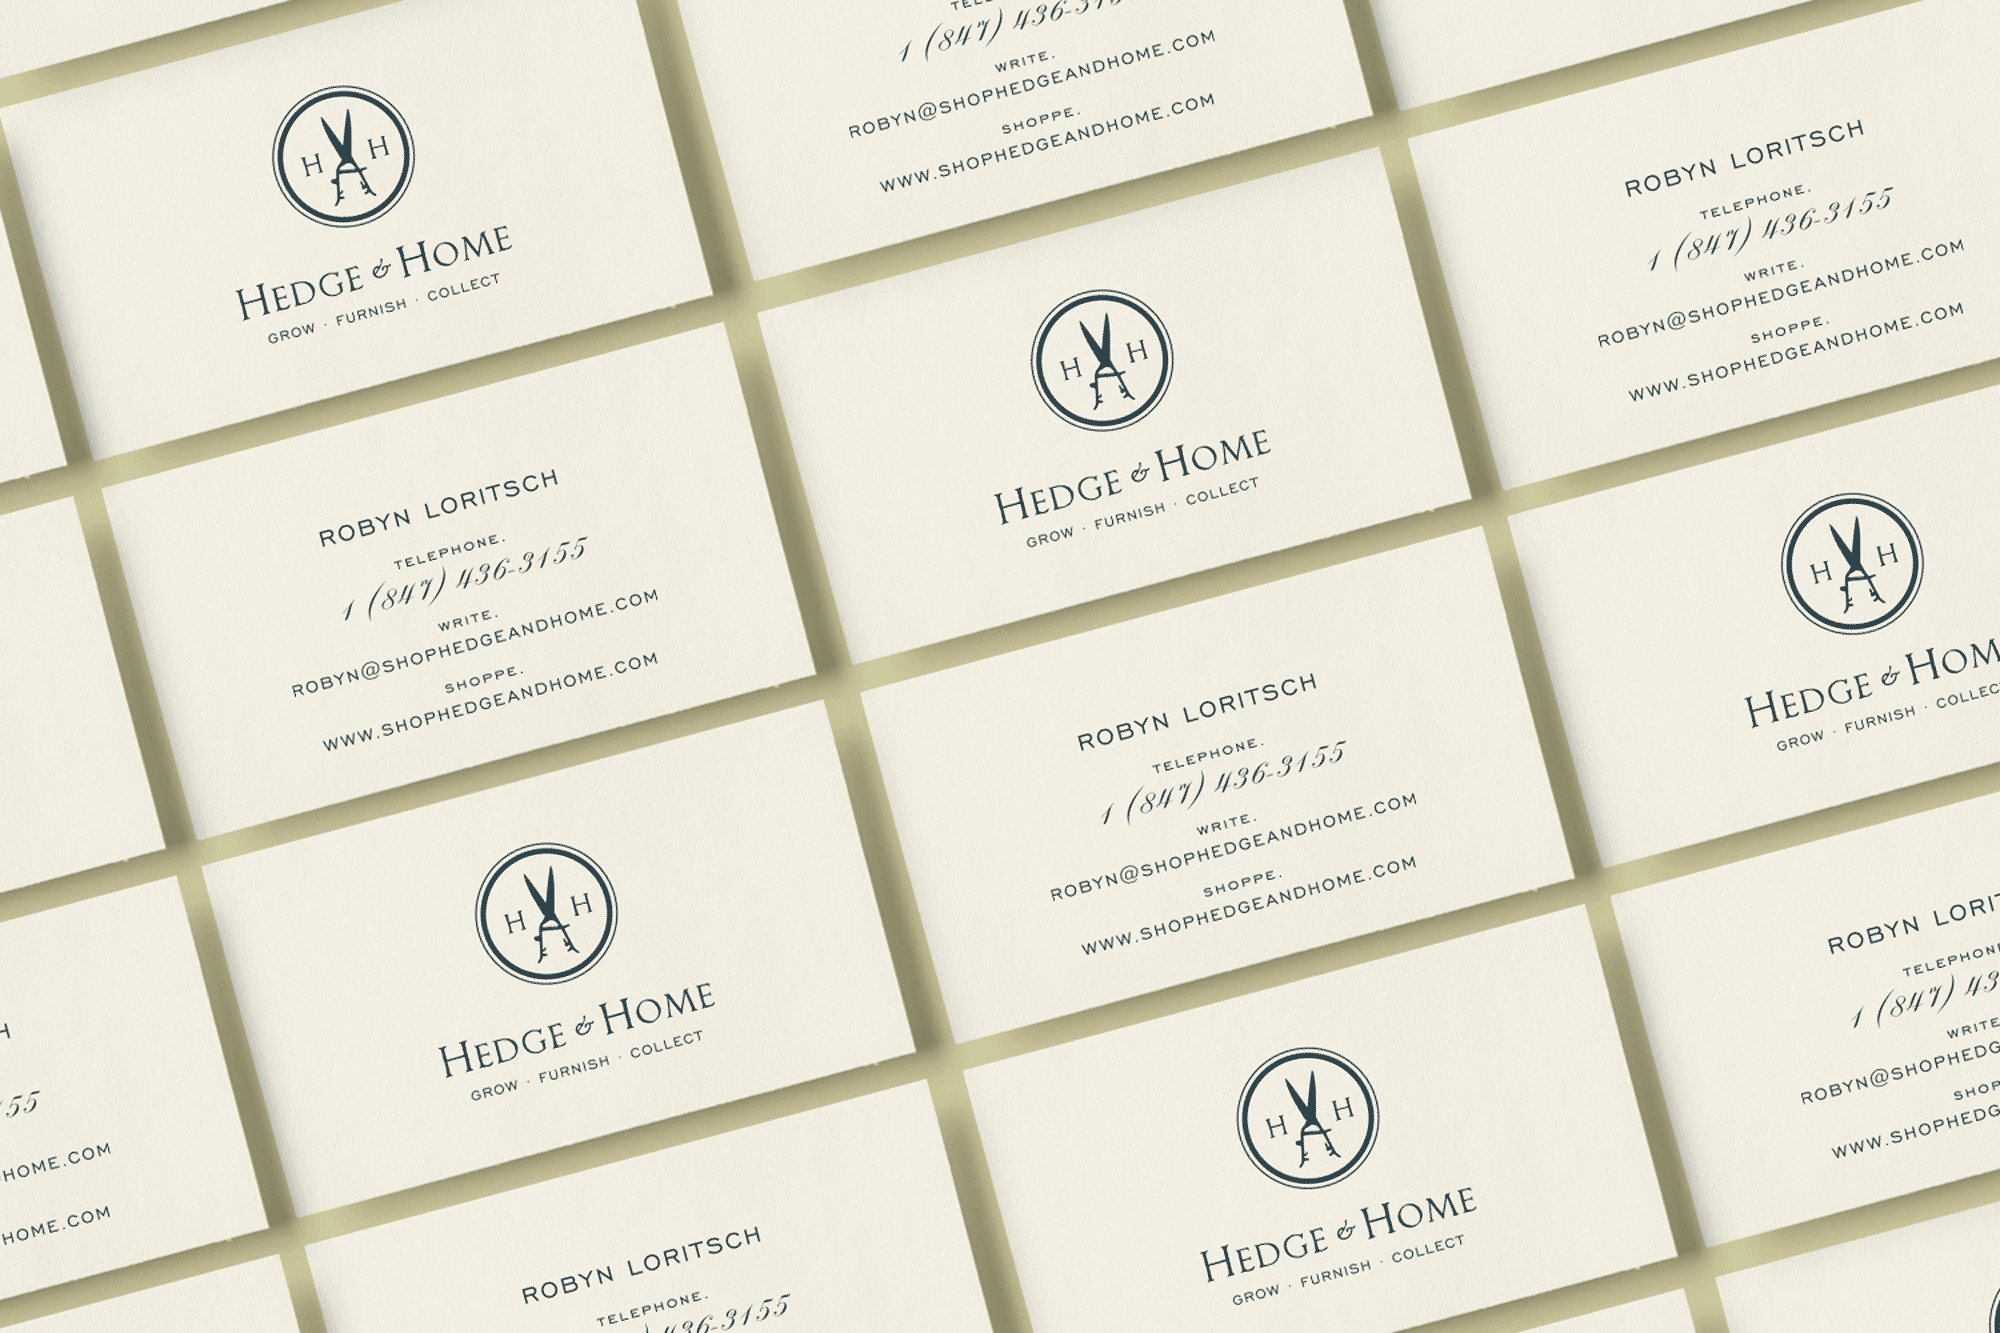 4_Hedge-and-Home_Stationery-Branding-Design-Business-Card_Rachelle-Sartini-Garner.png